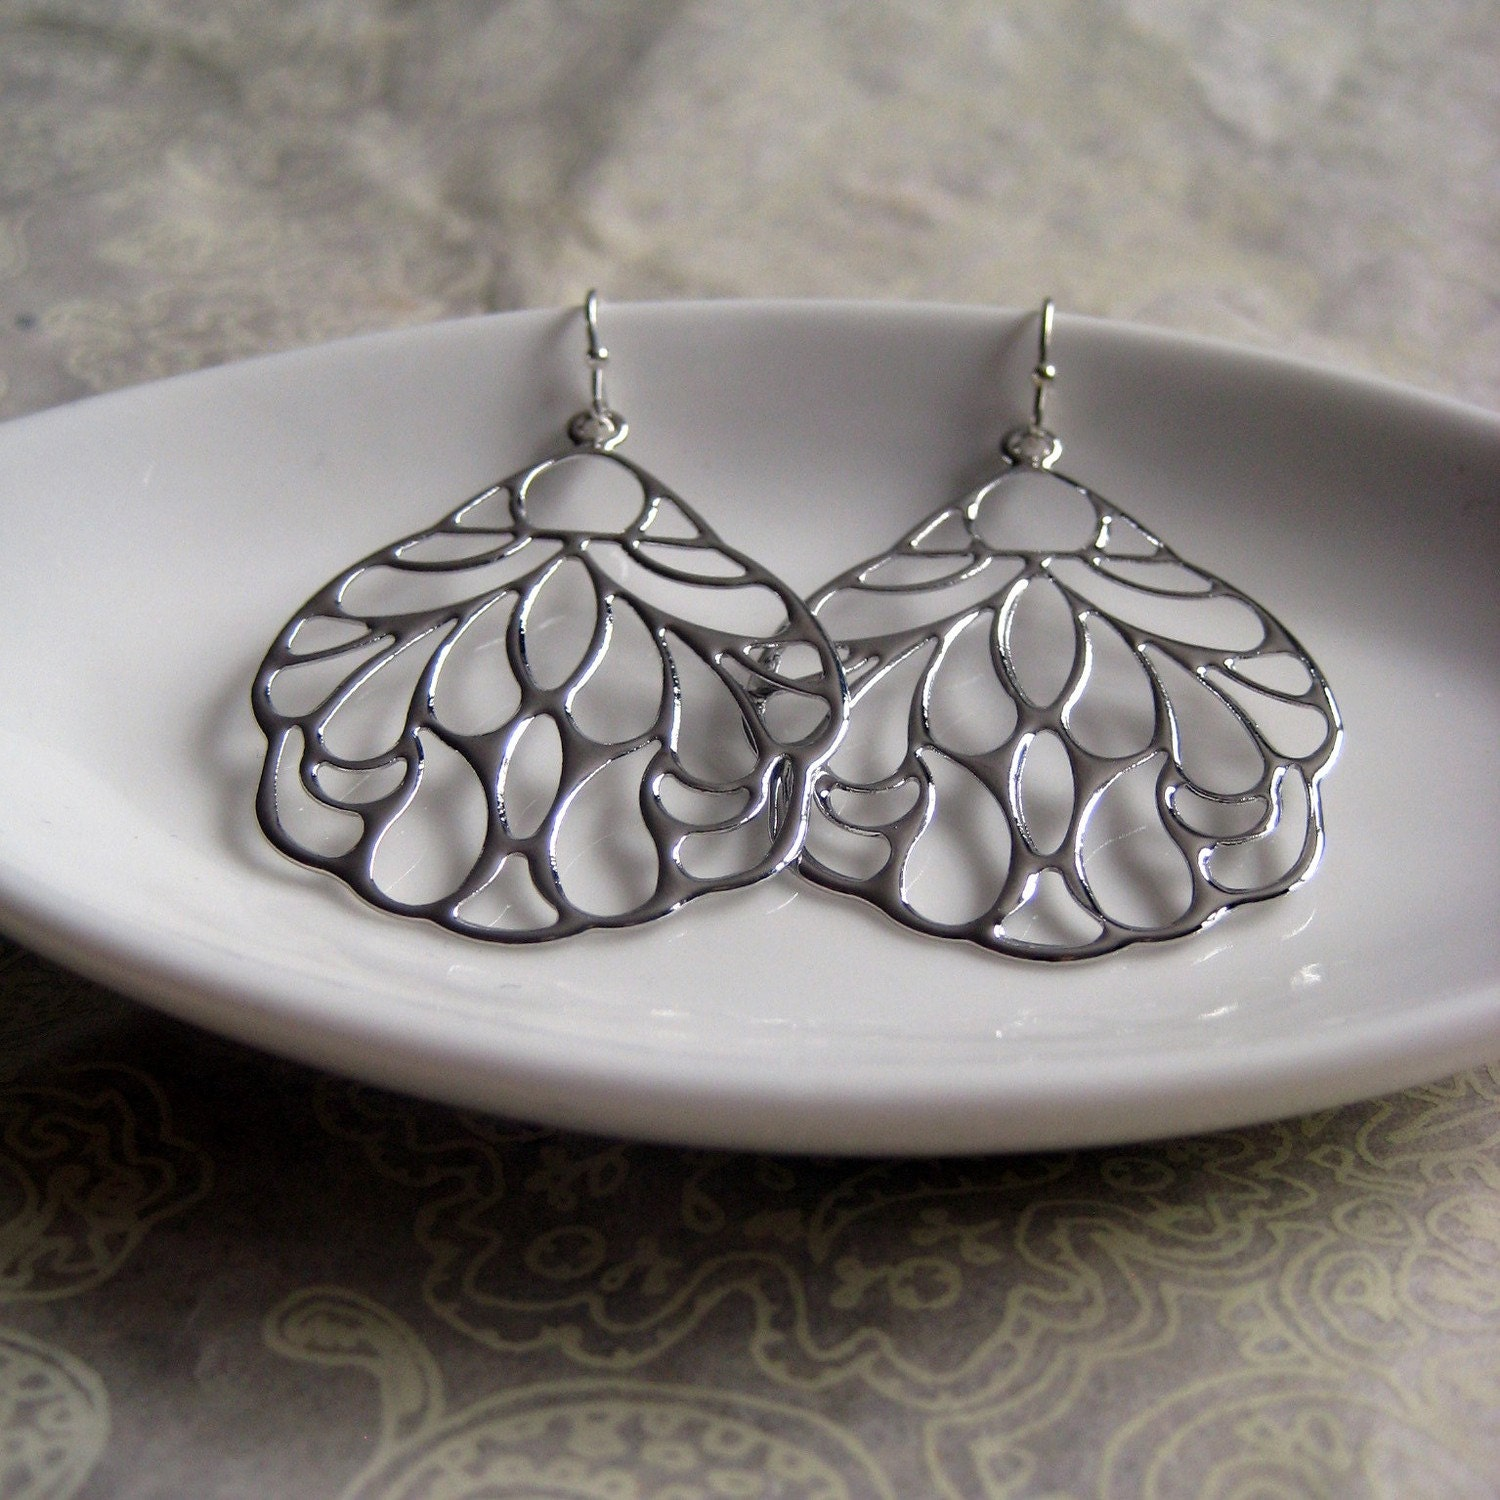 NEW - Osaka, Japan - Earrings - Silver - Japan Relief